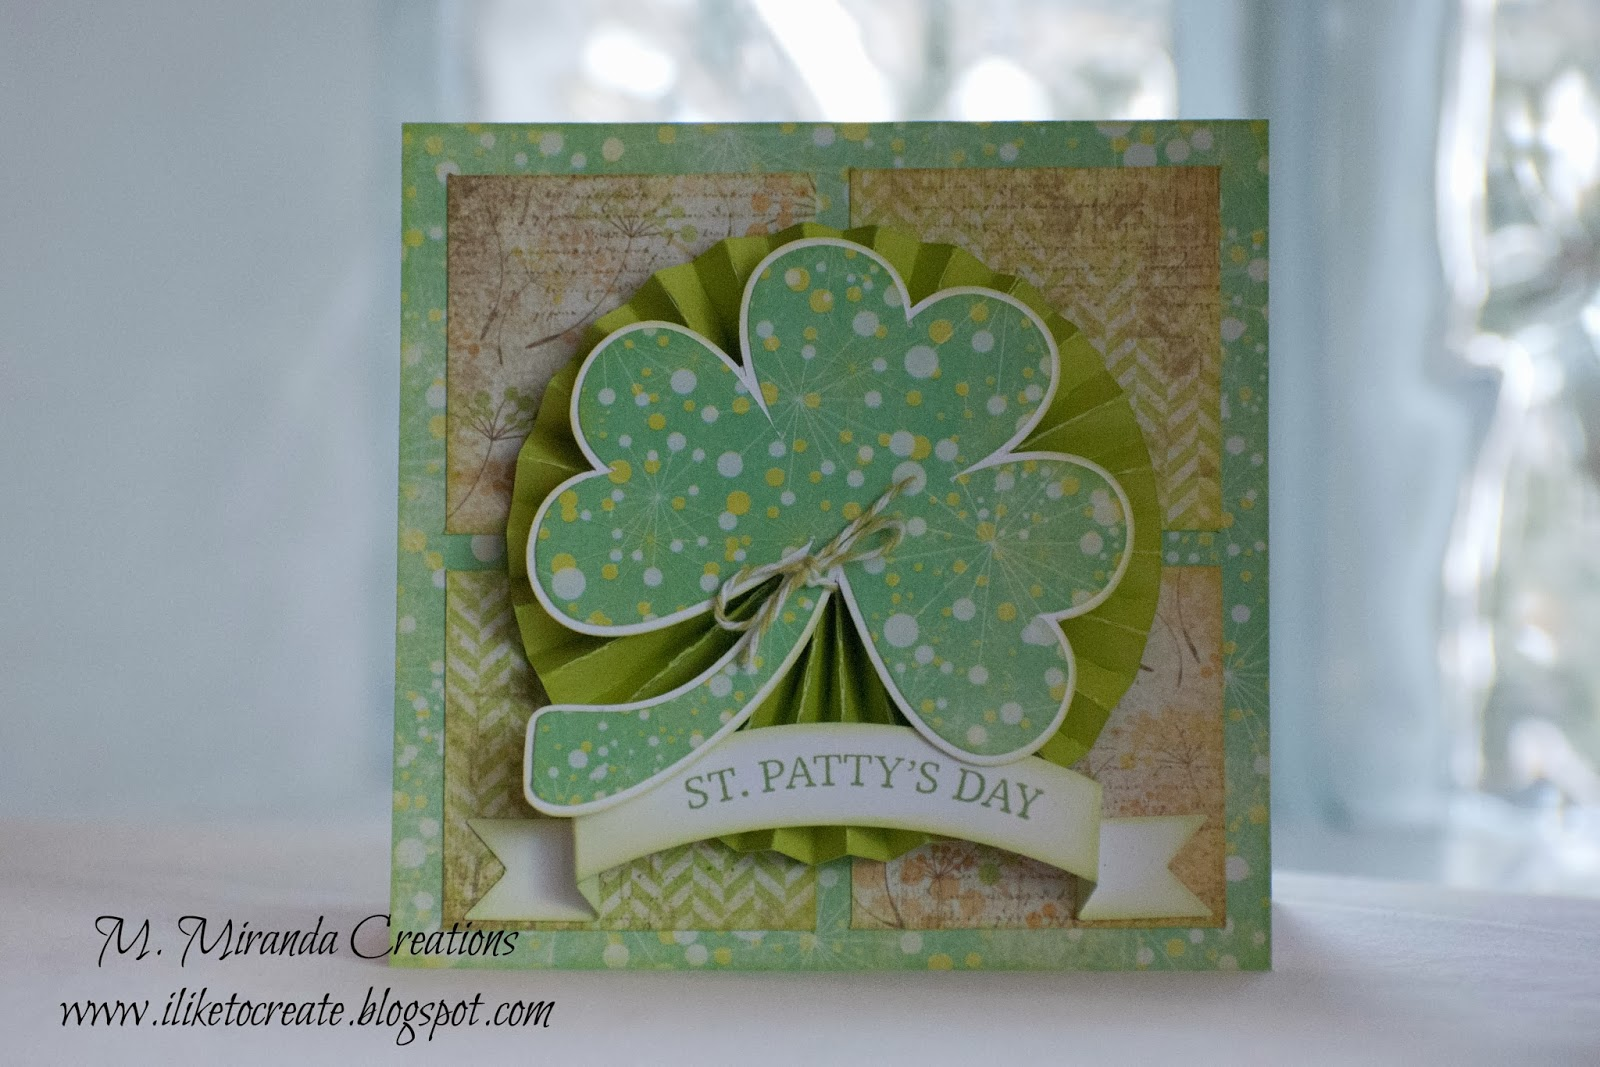 http://iliketocreate.blogspot.com/2014/02/st-pattys-day.html